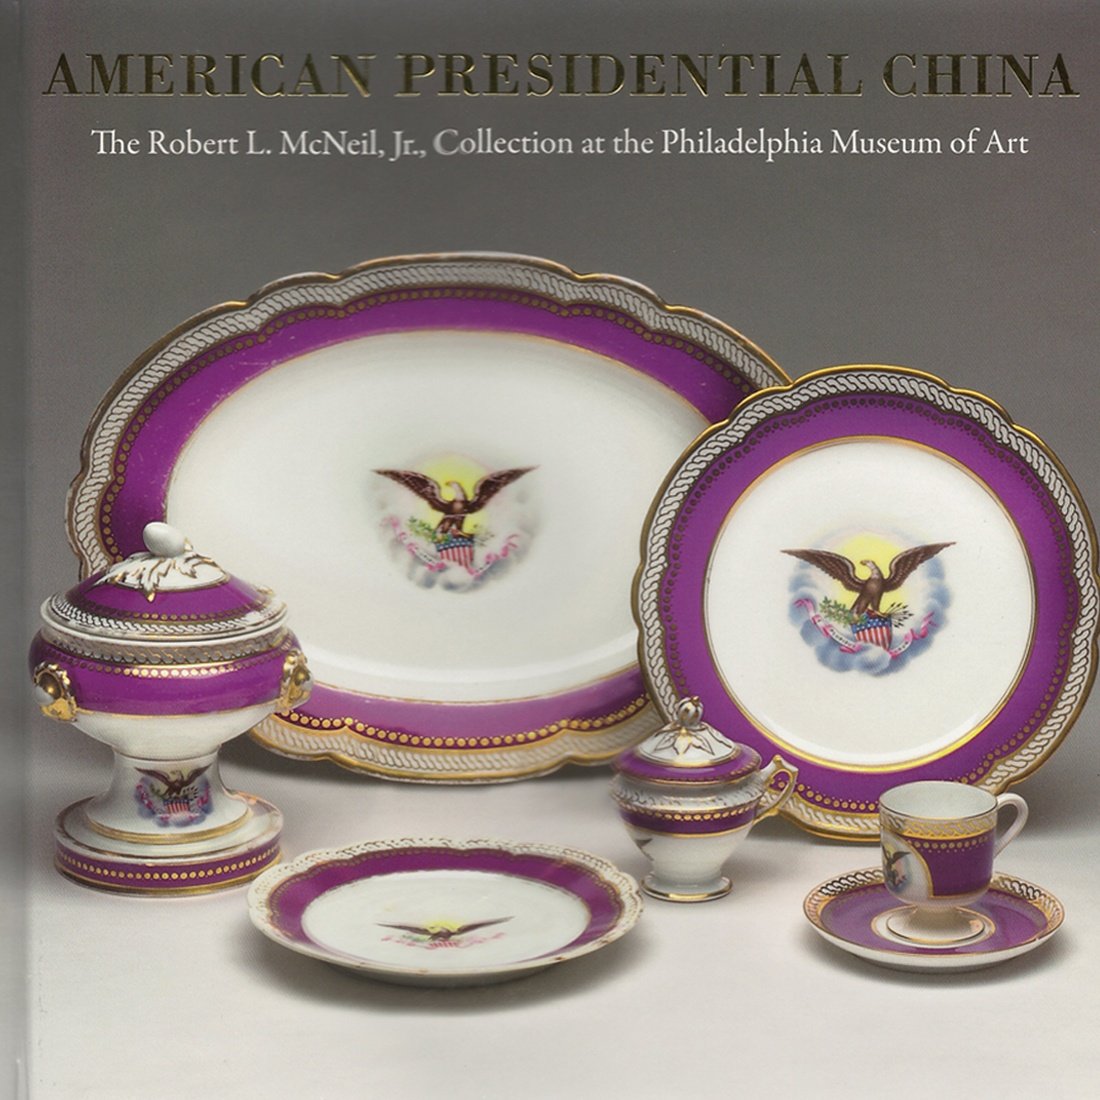 PRESIDENTIAL CHINA BOOK ROBERT MCNEIL